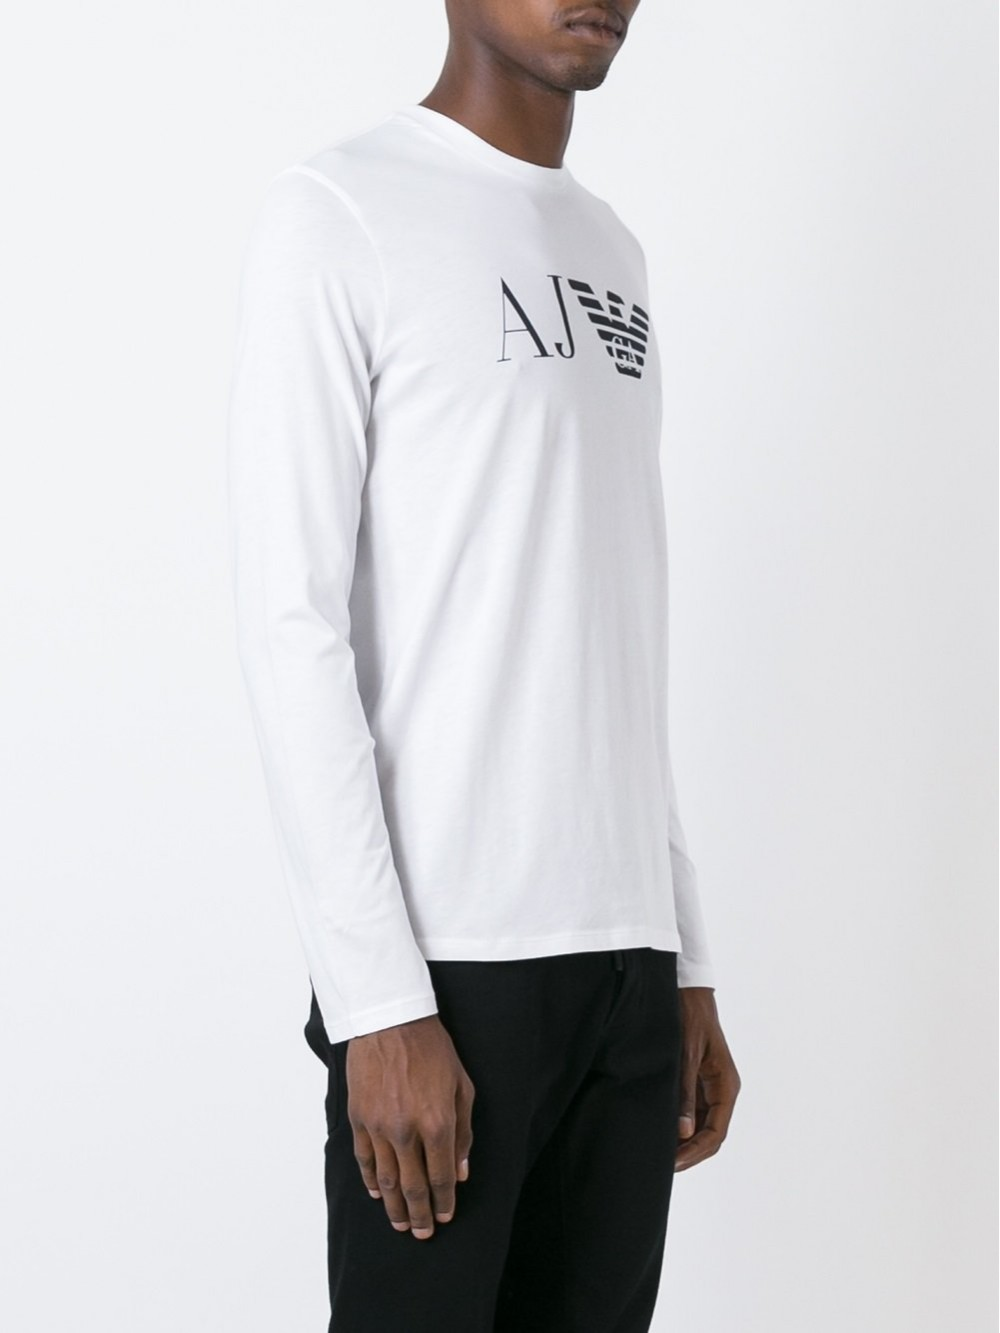 LS T-Shirt By Armani Jeans $60.512